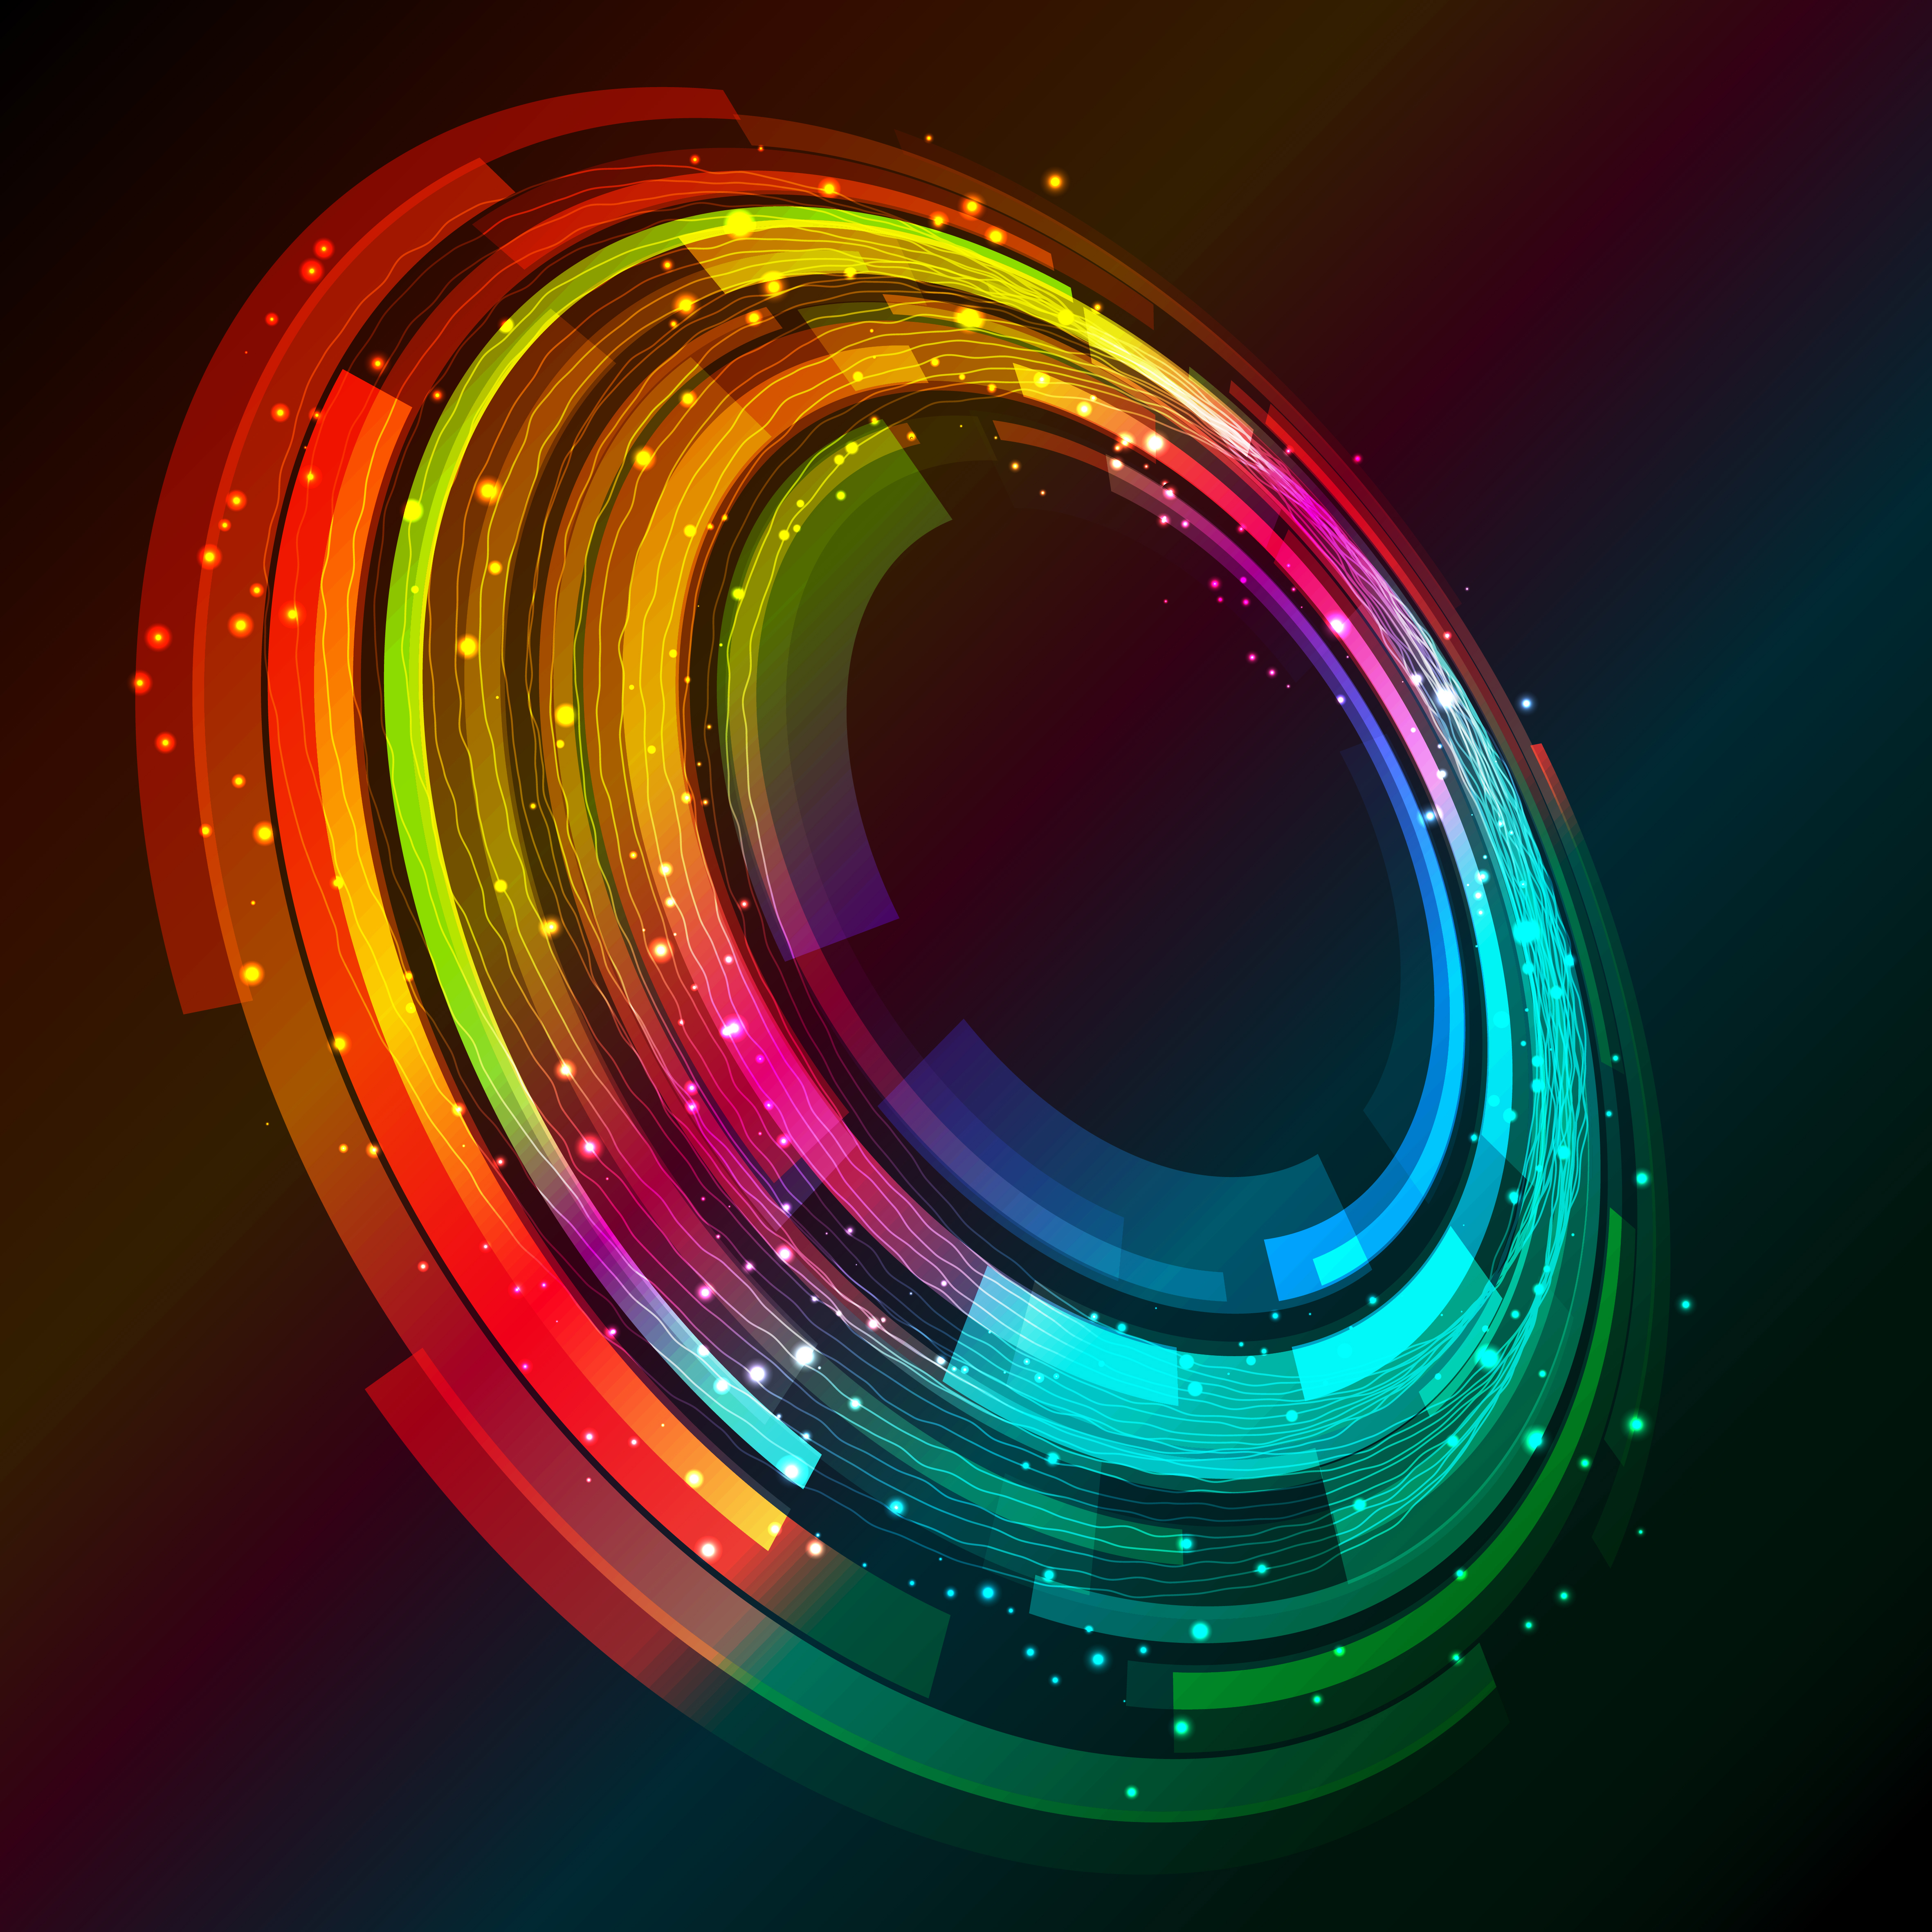 Abstract circular design background - Download Free Vector Art, Stock Graphics & Images